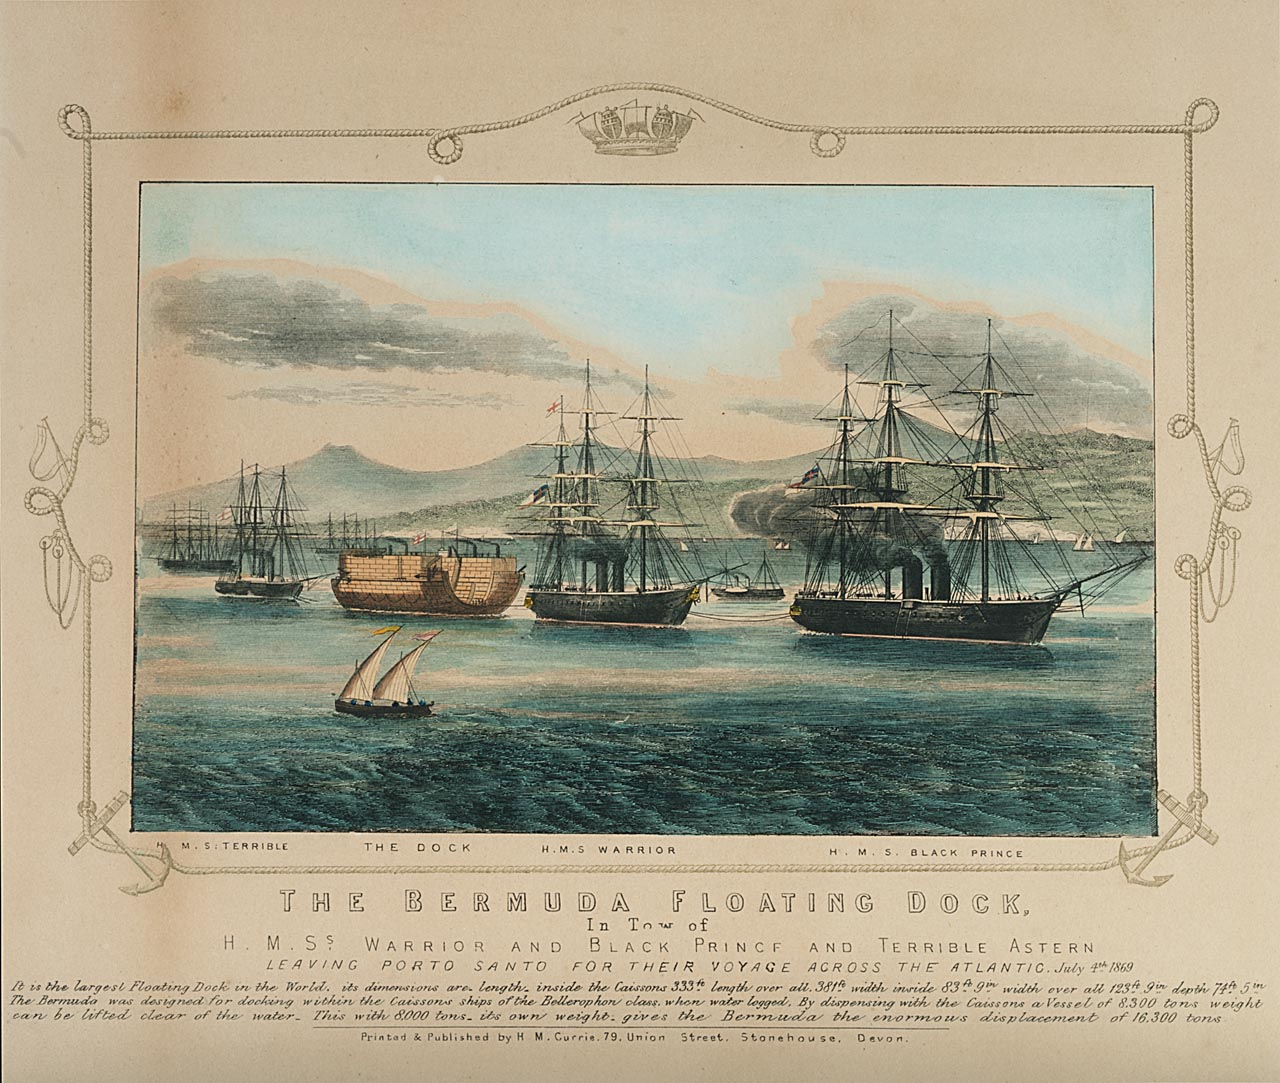 Coloured print showing the departure of the Bermuda floating dock from Porto Santo on 4 July 1869